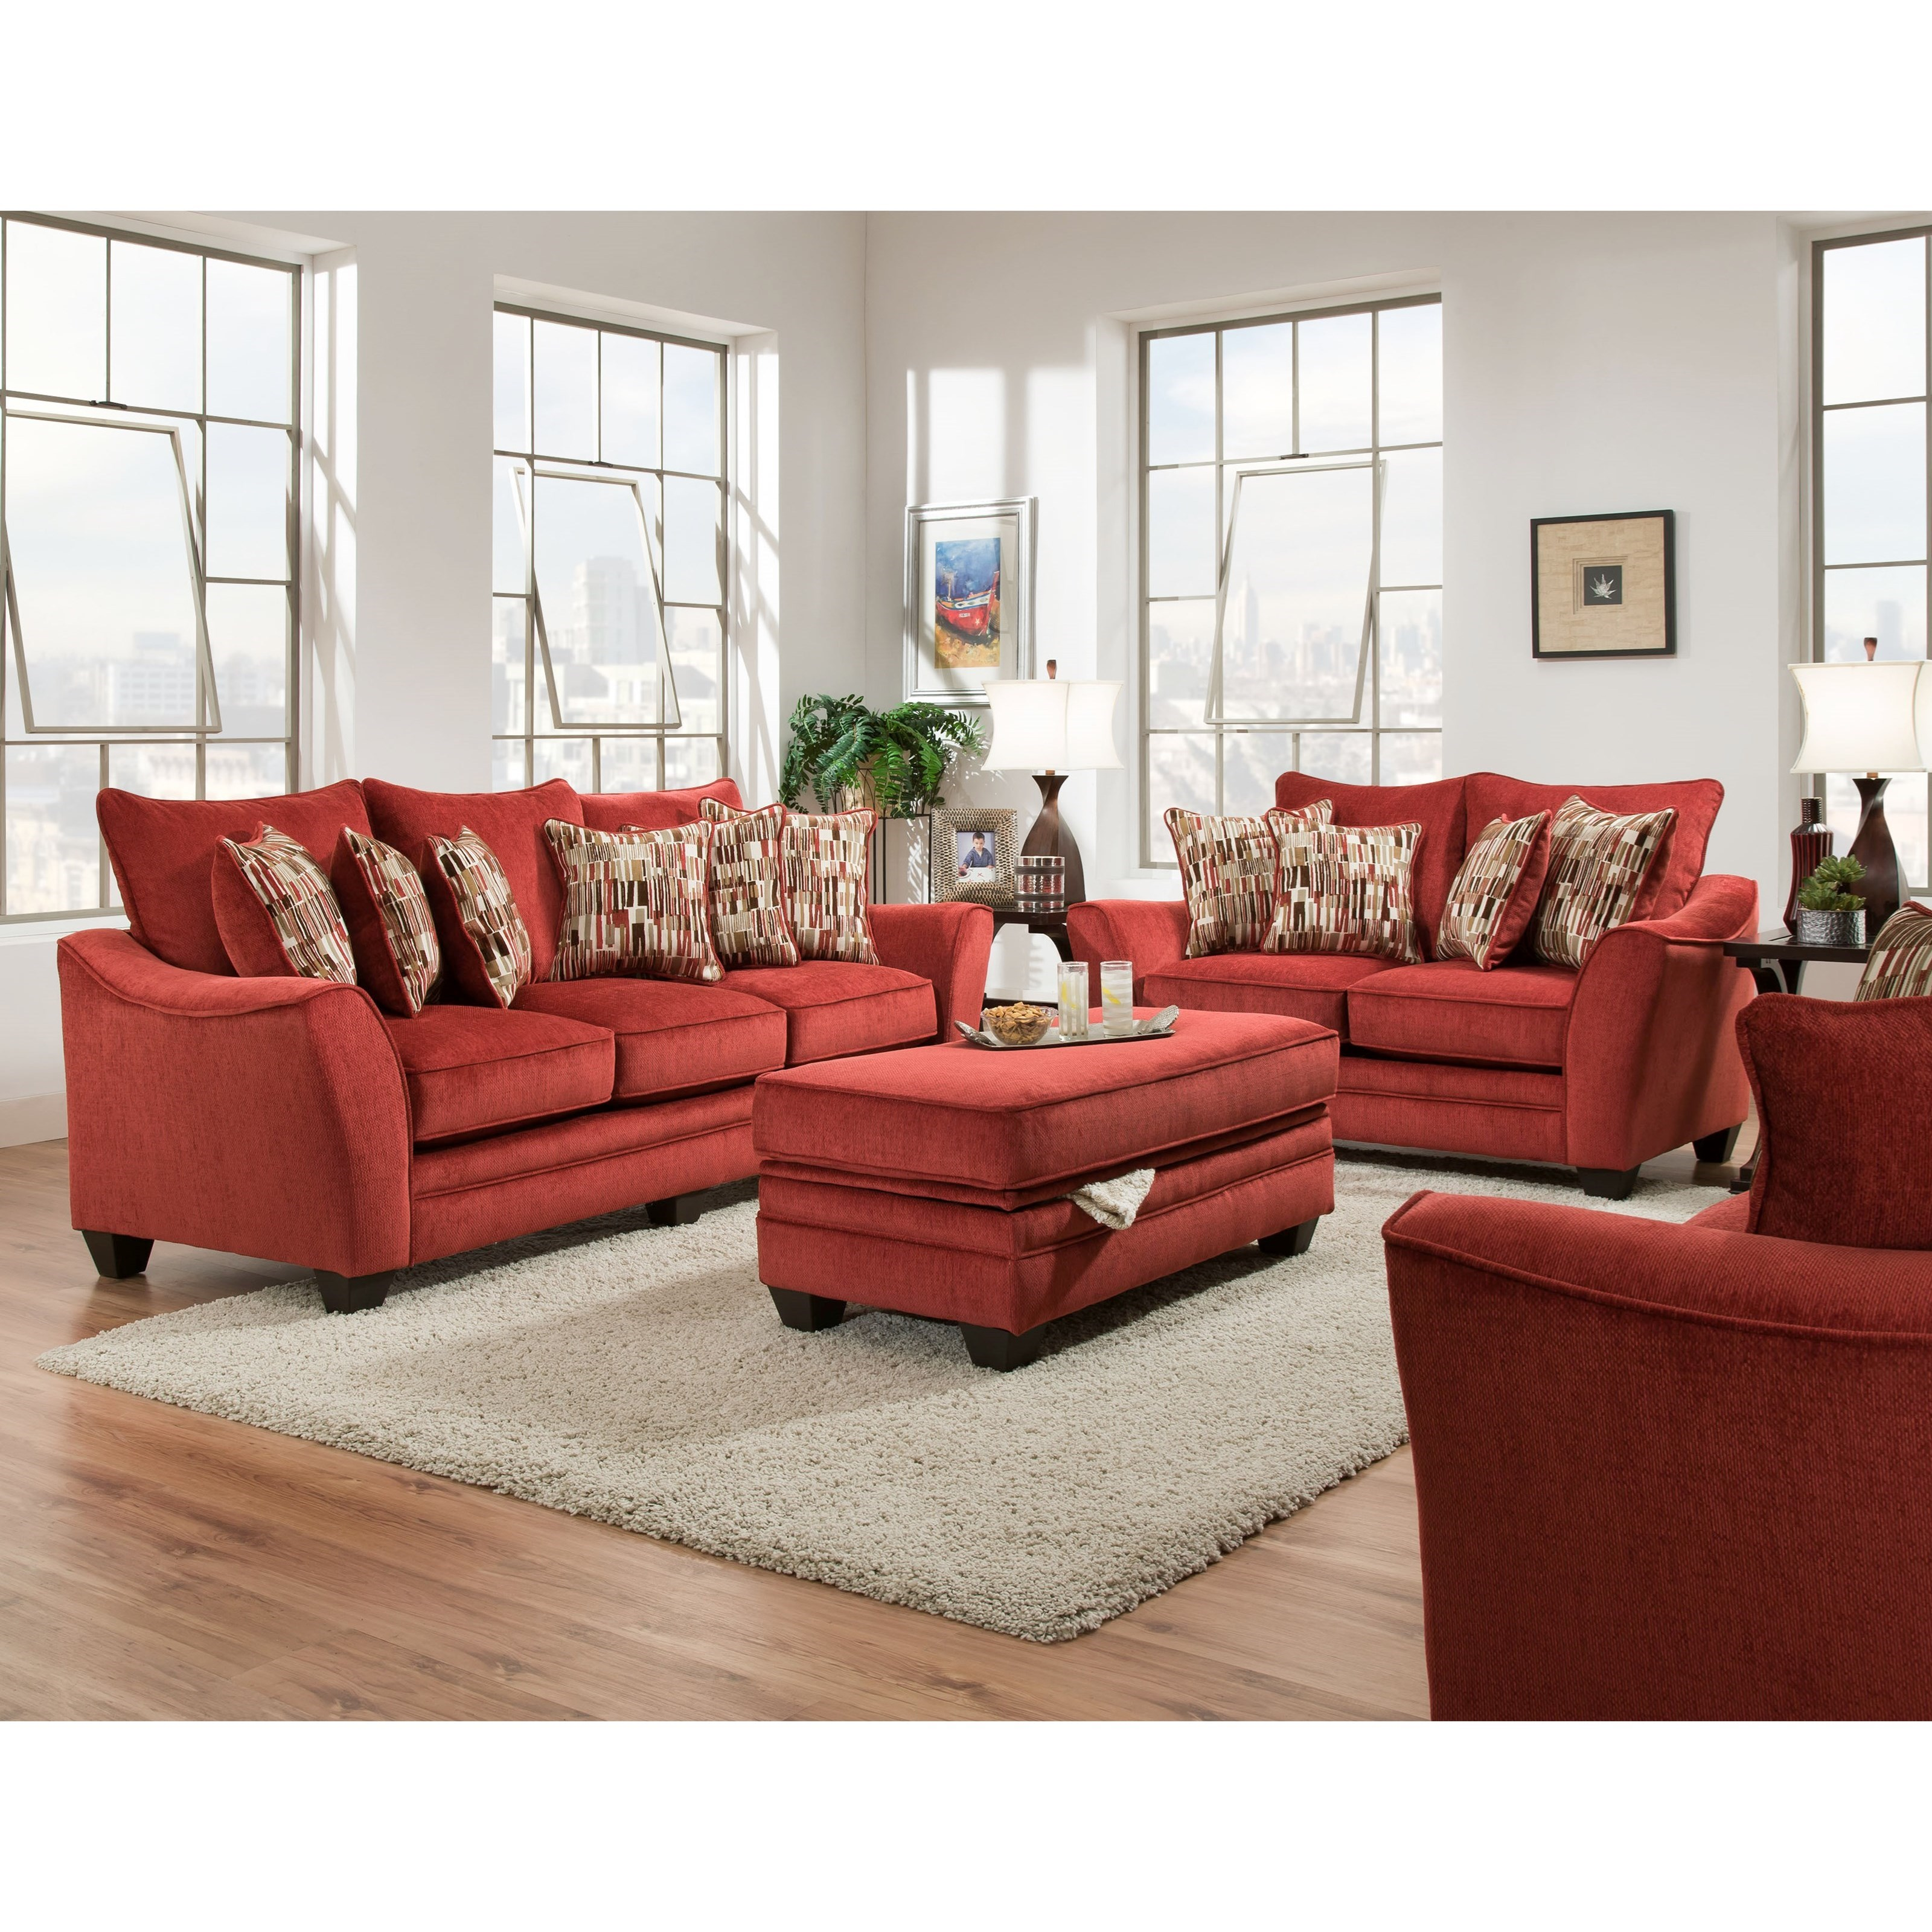 furniture groupings living room american furniture 3850 stationary living room 13236